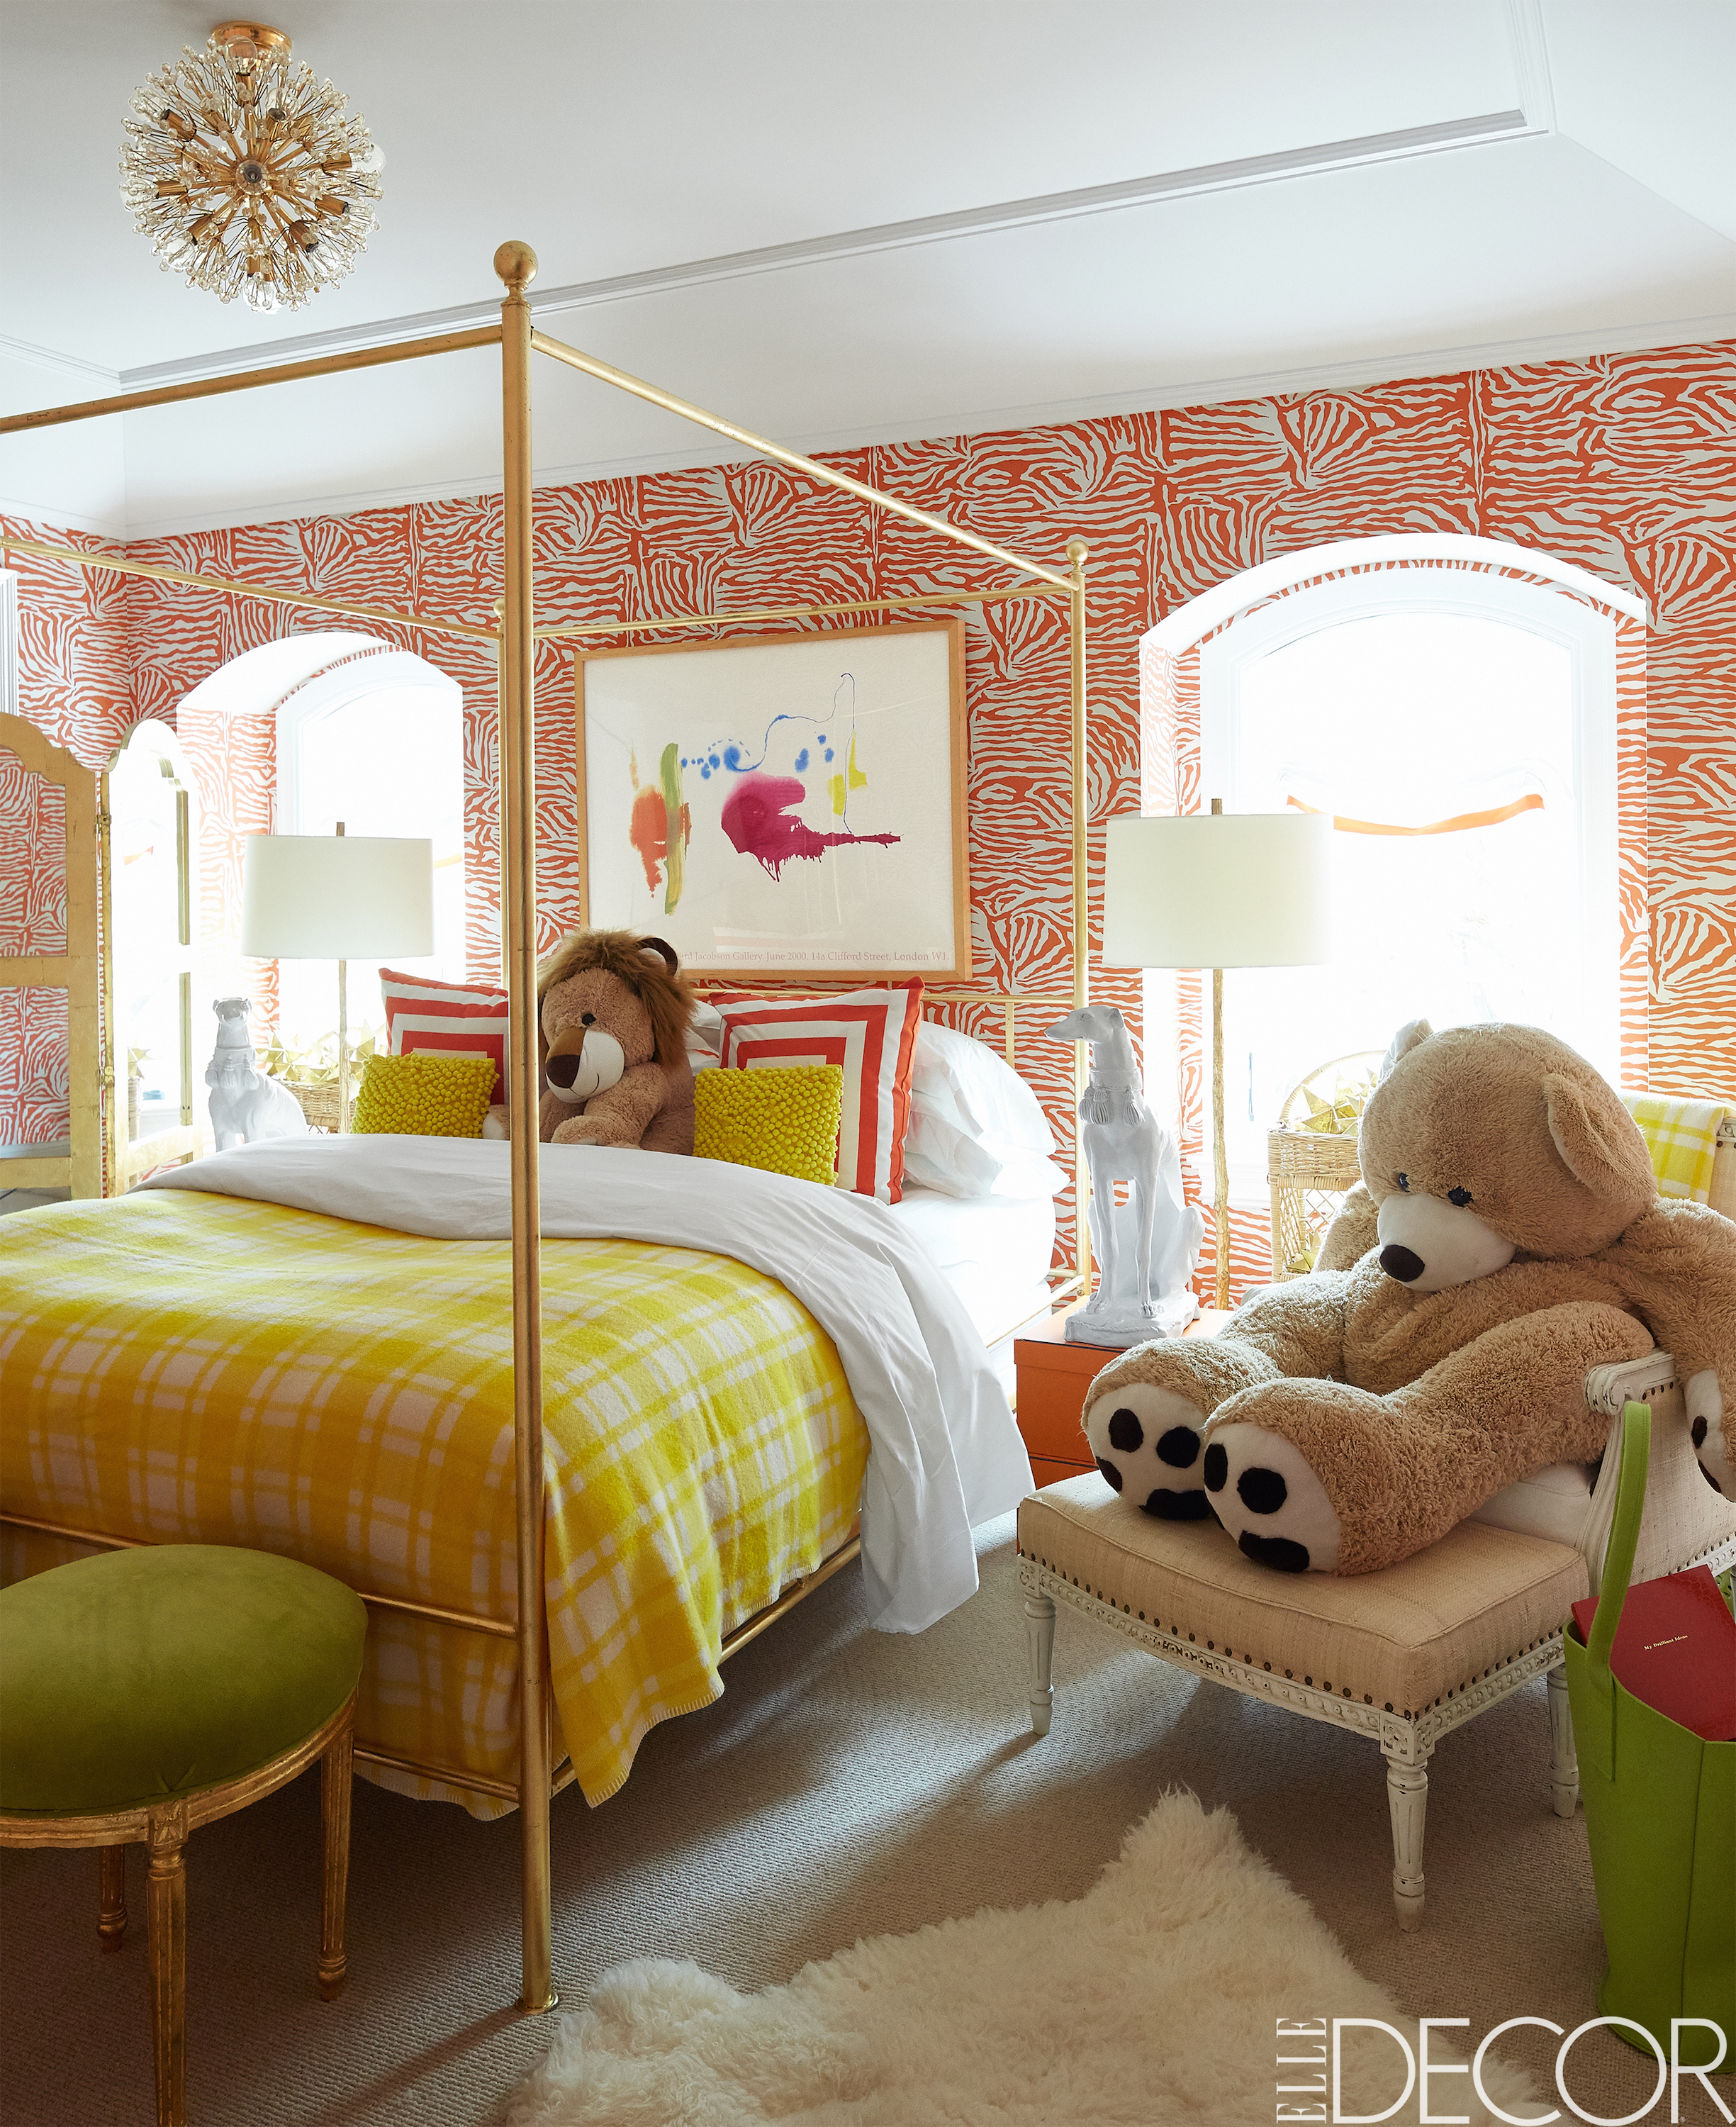 10 Girls Bedroom Decorating Ideas - Creative Girls Room ... on Girls Room Decorations  id=28180